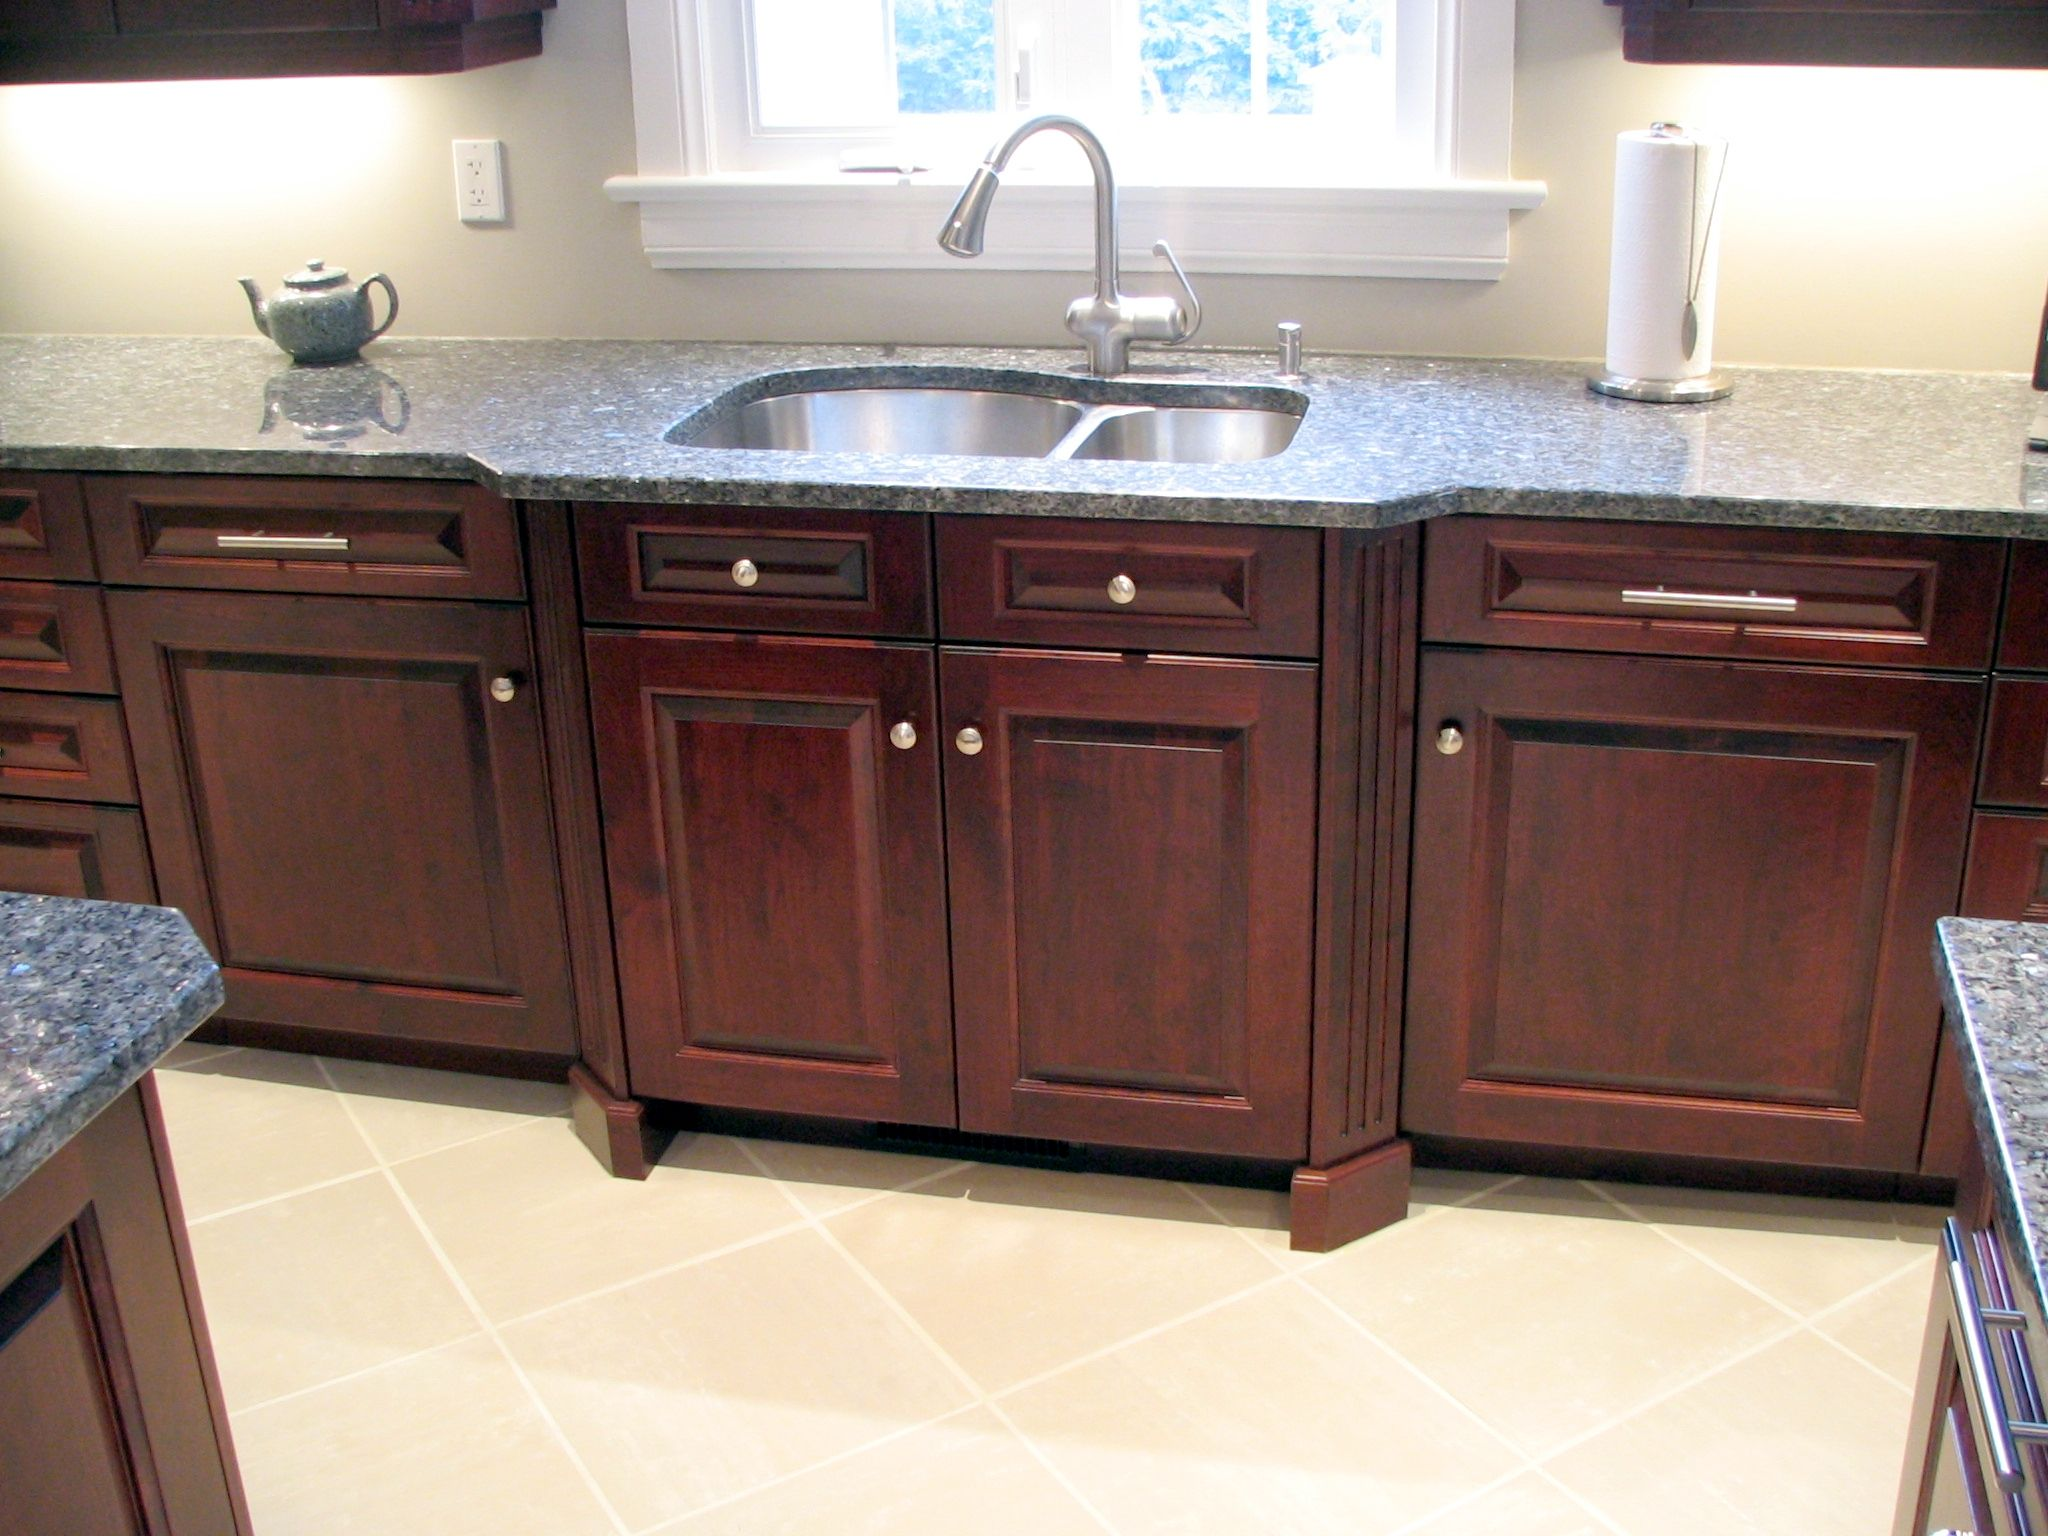 angled fluted columns bump out the sink area in this rosewood cherry kitchen  can you angled fluted columns bump out the sink area in this rosewood      rh   pinterest com